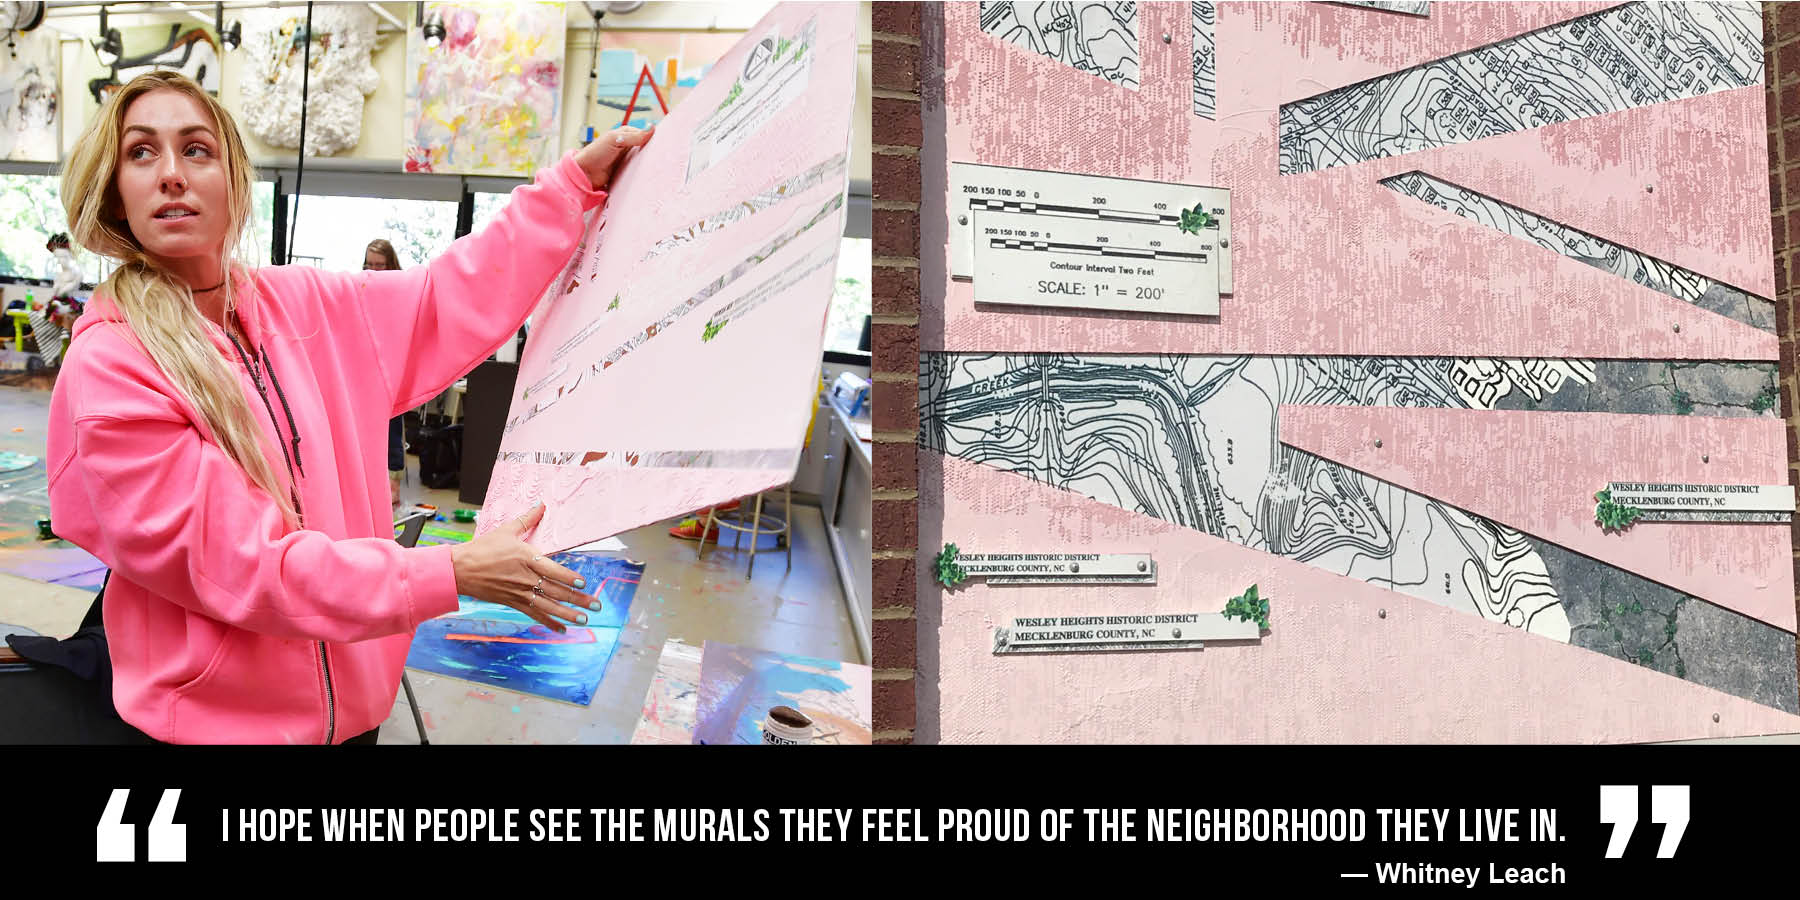 """I hope when people see the murals they feel proud of the neighborhood they live in."" Whitney Leach"